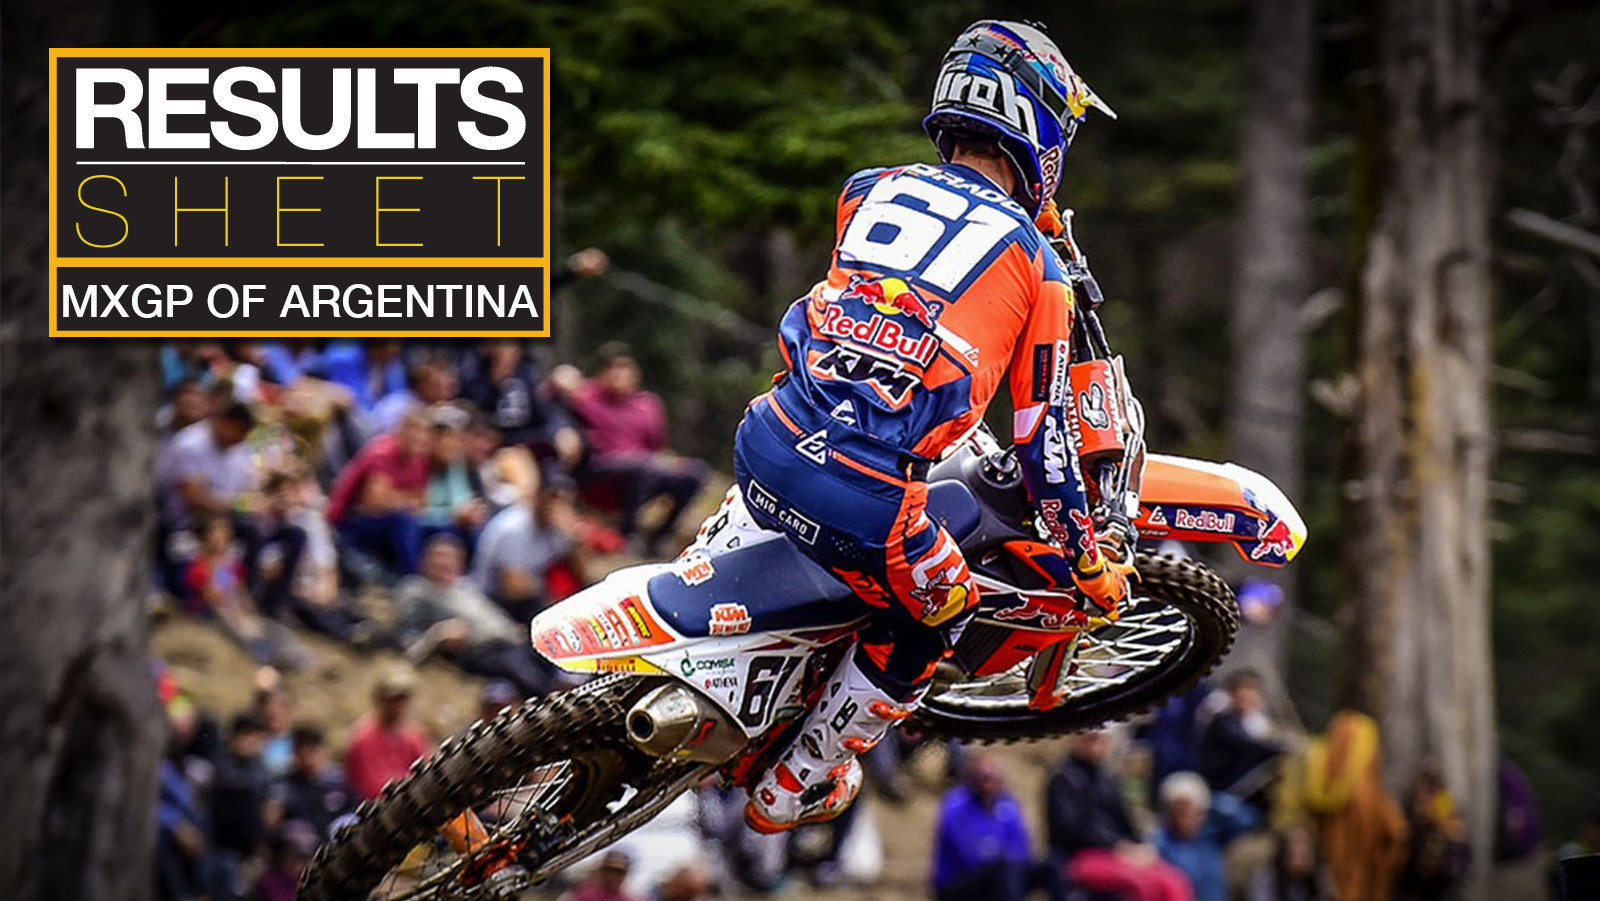 Results Sheet: 2019 MXGP of Argentina